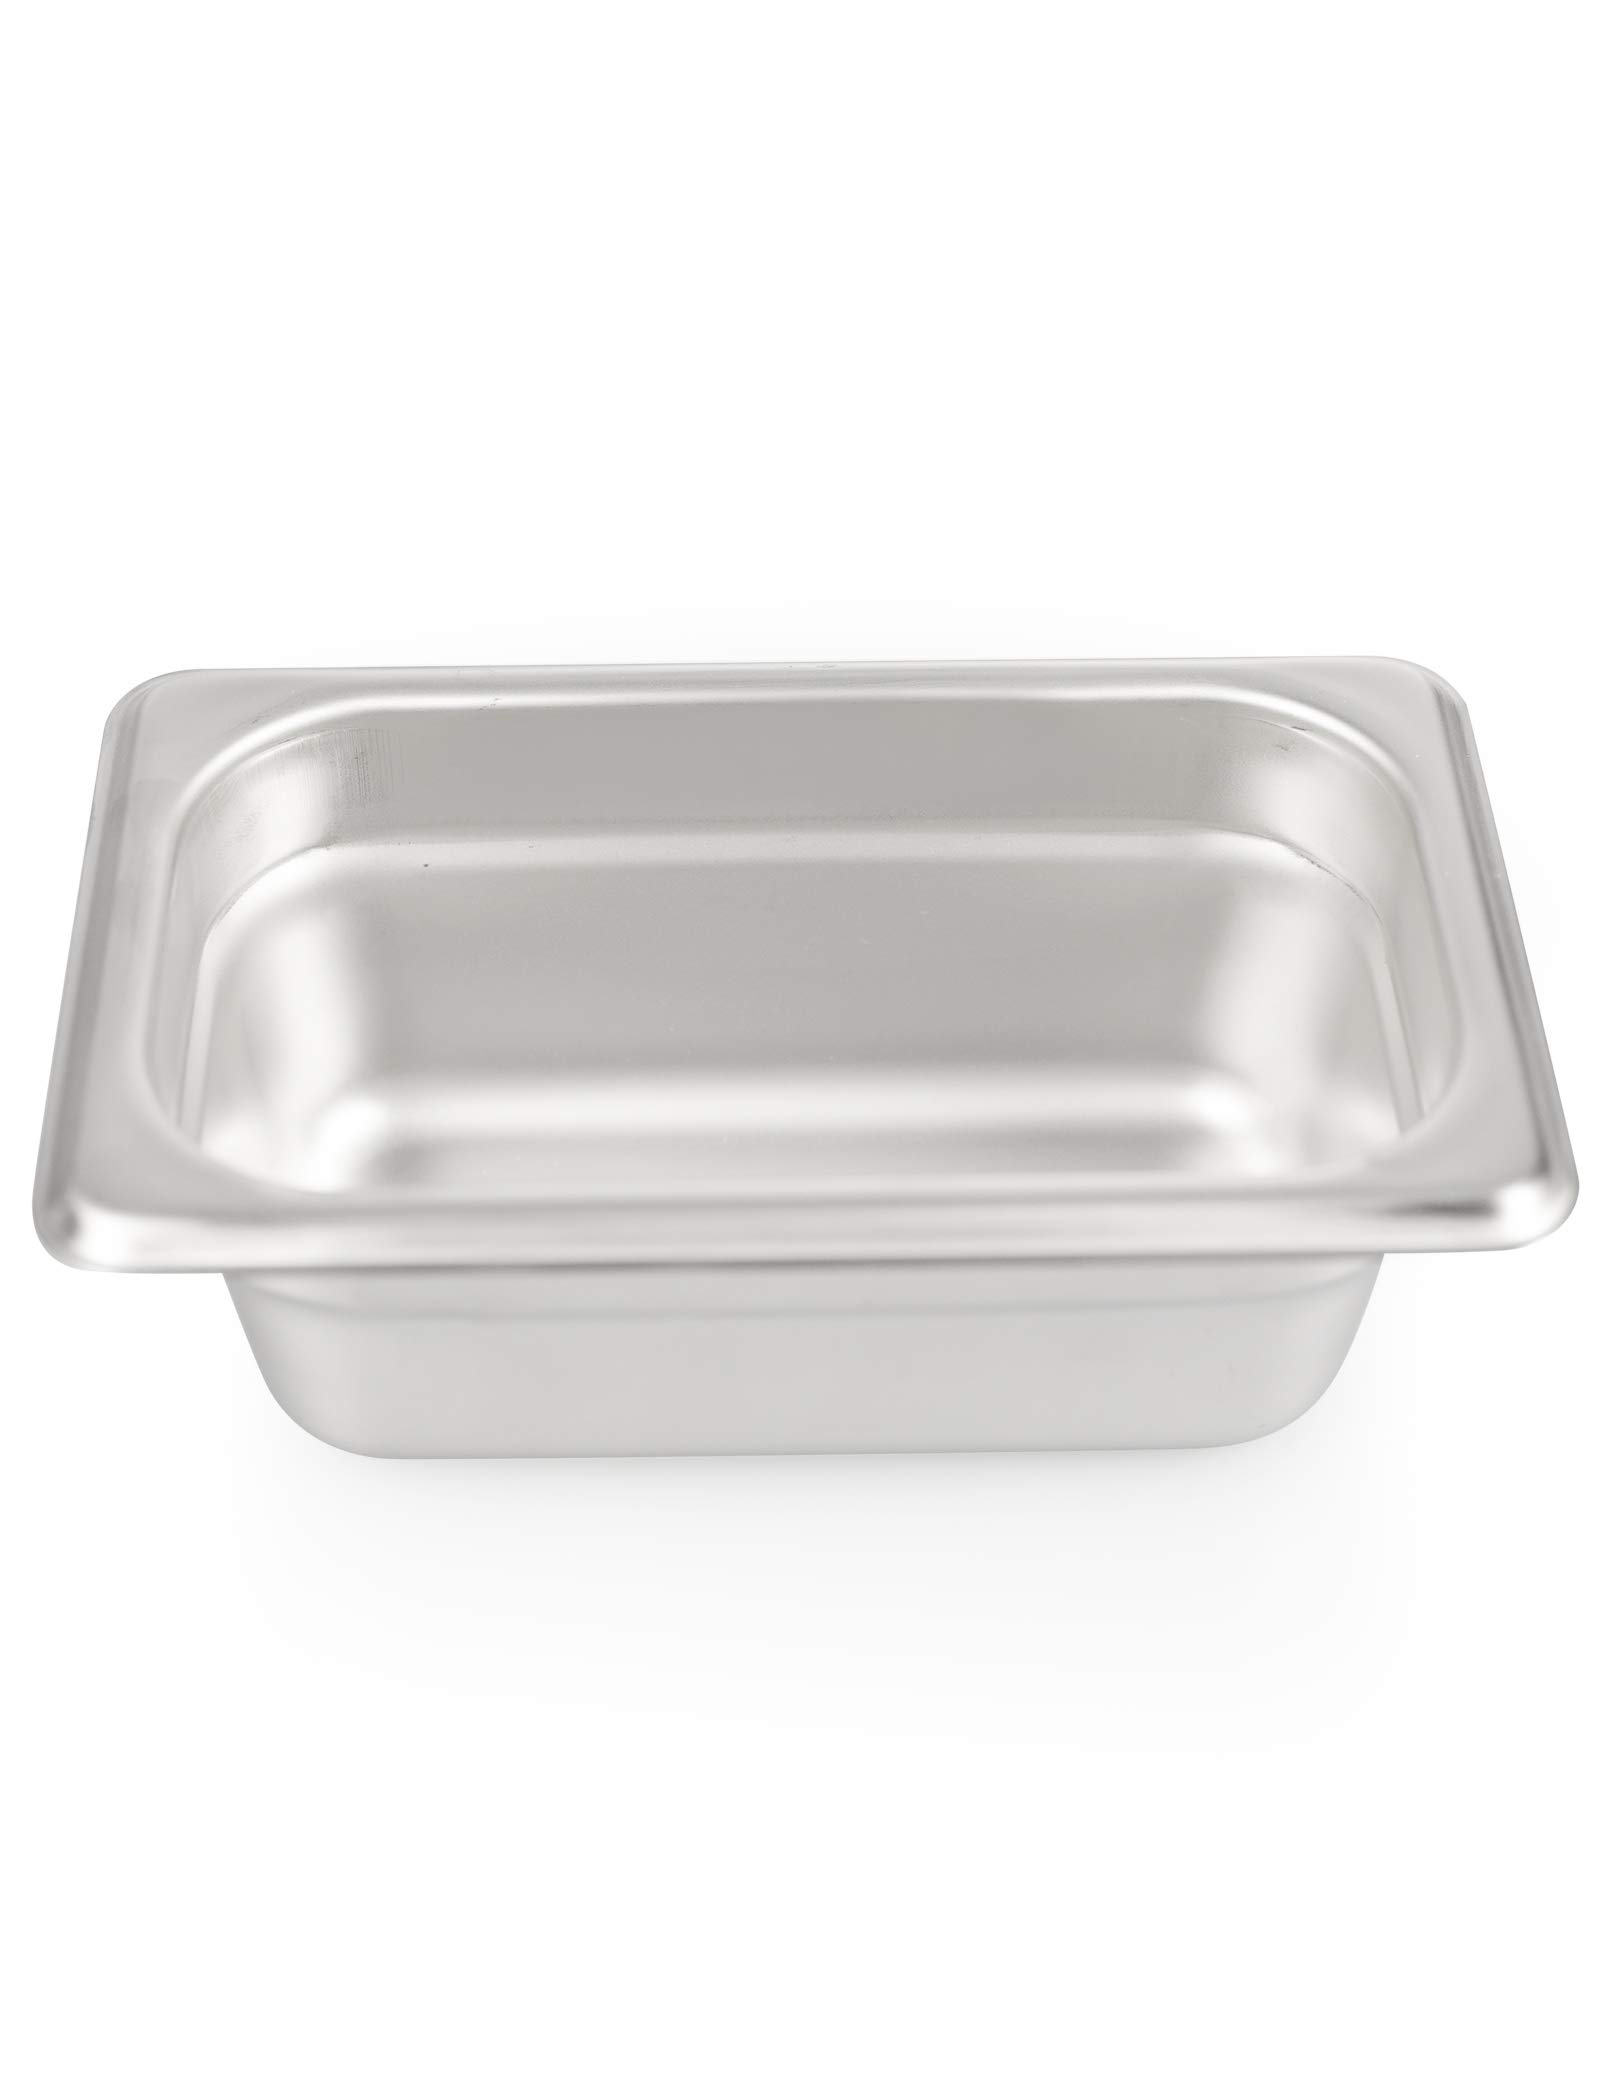 2 1/2'' Deep Steam Table Pan 1/9 Size, Kitma 0.6 Quart Stainless Steel Anti-Jam Standard Weight Hotel GN Food Pans - NSF (6.93''L x 4.25''W) - 12 Pack